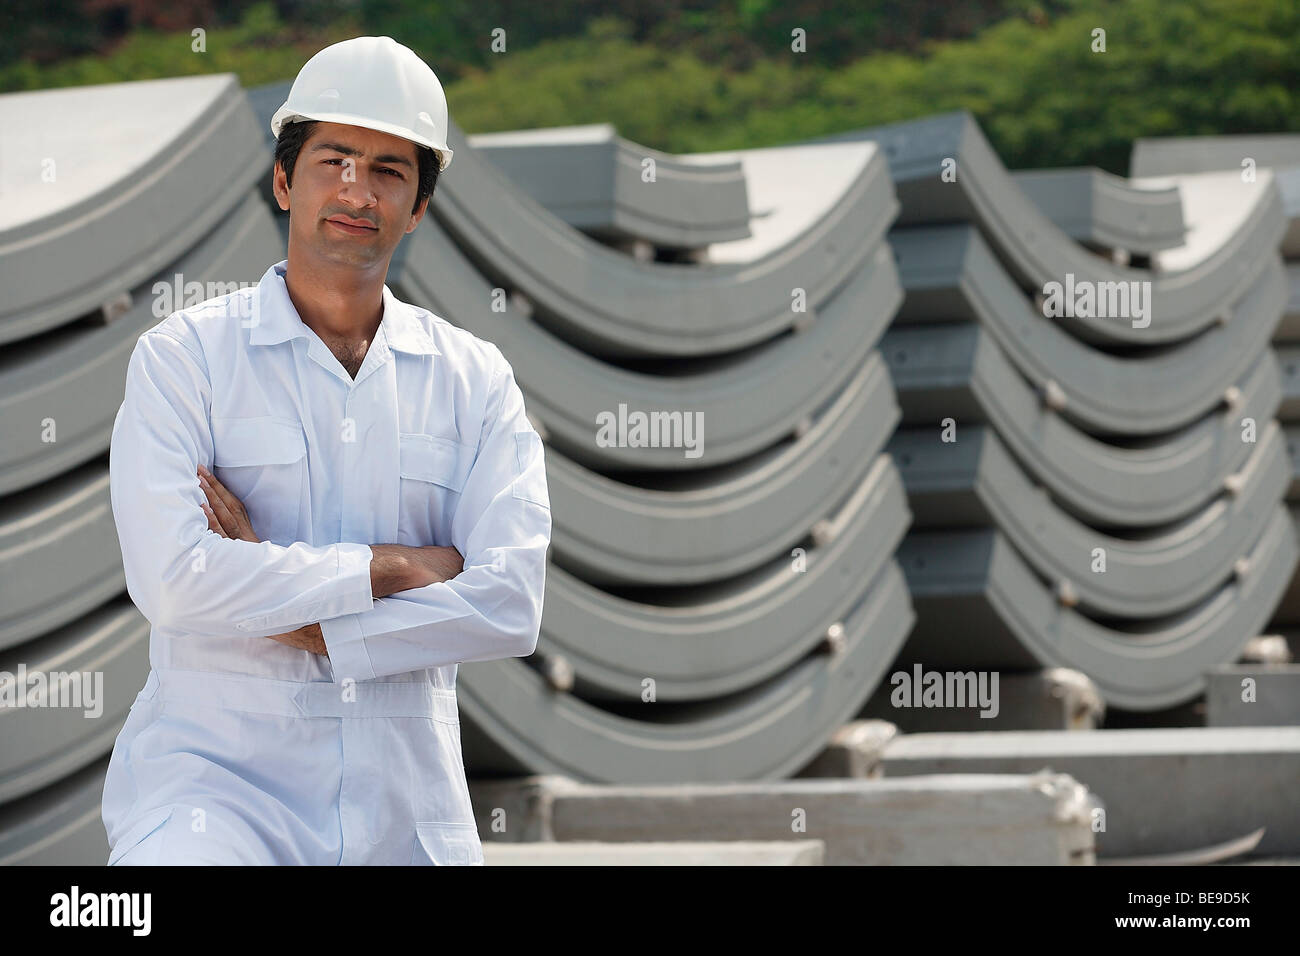 Man in work uniform arms crossed, looking at camera - Stock Image